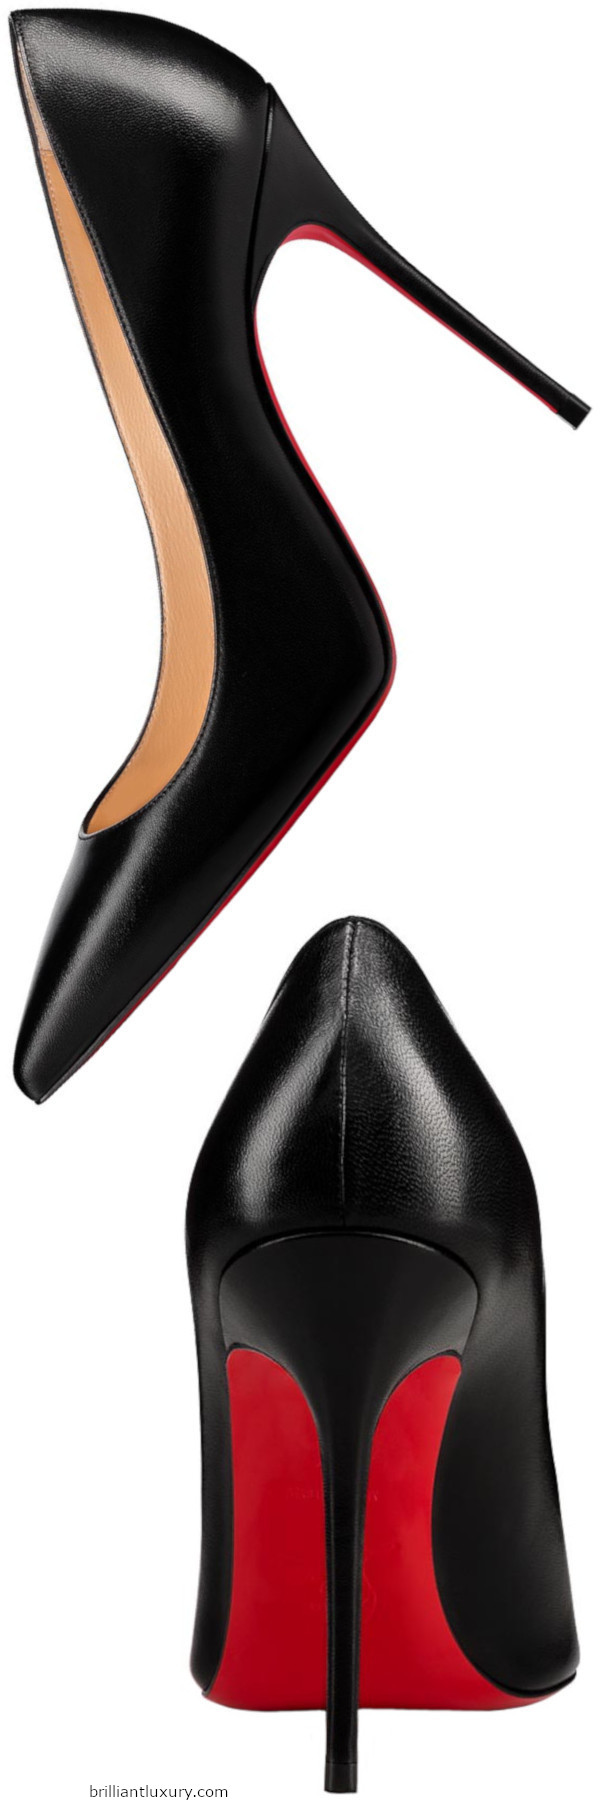 Brilliant Luxury│Christian Louboutin Decollette black nappa leather pumps